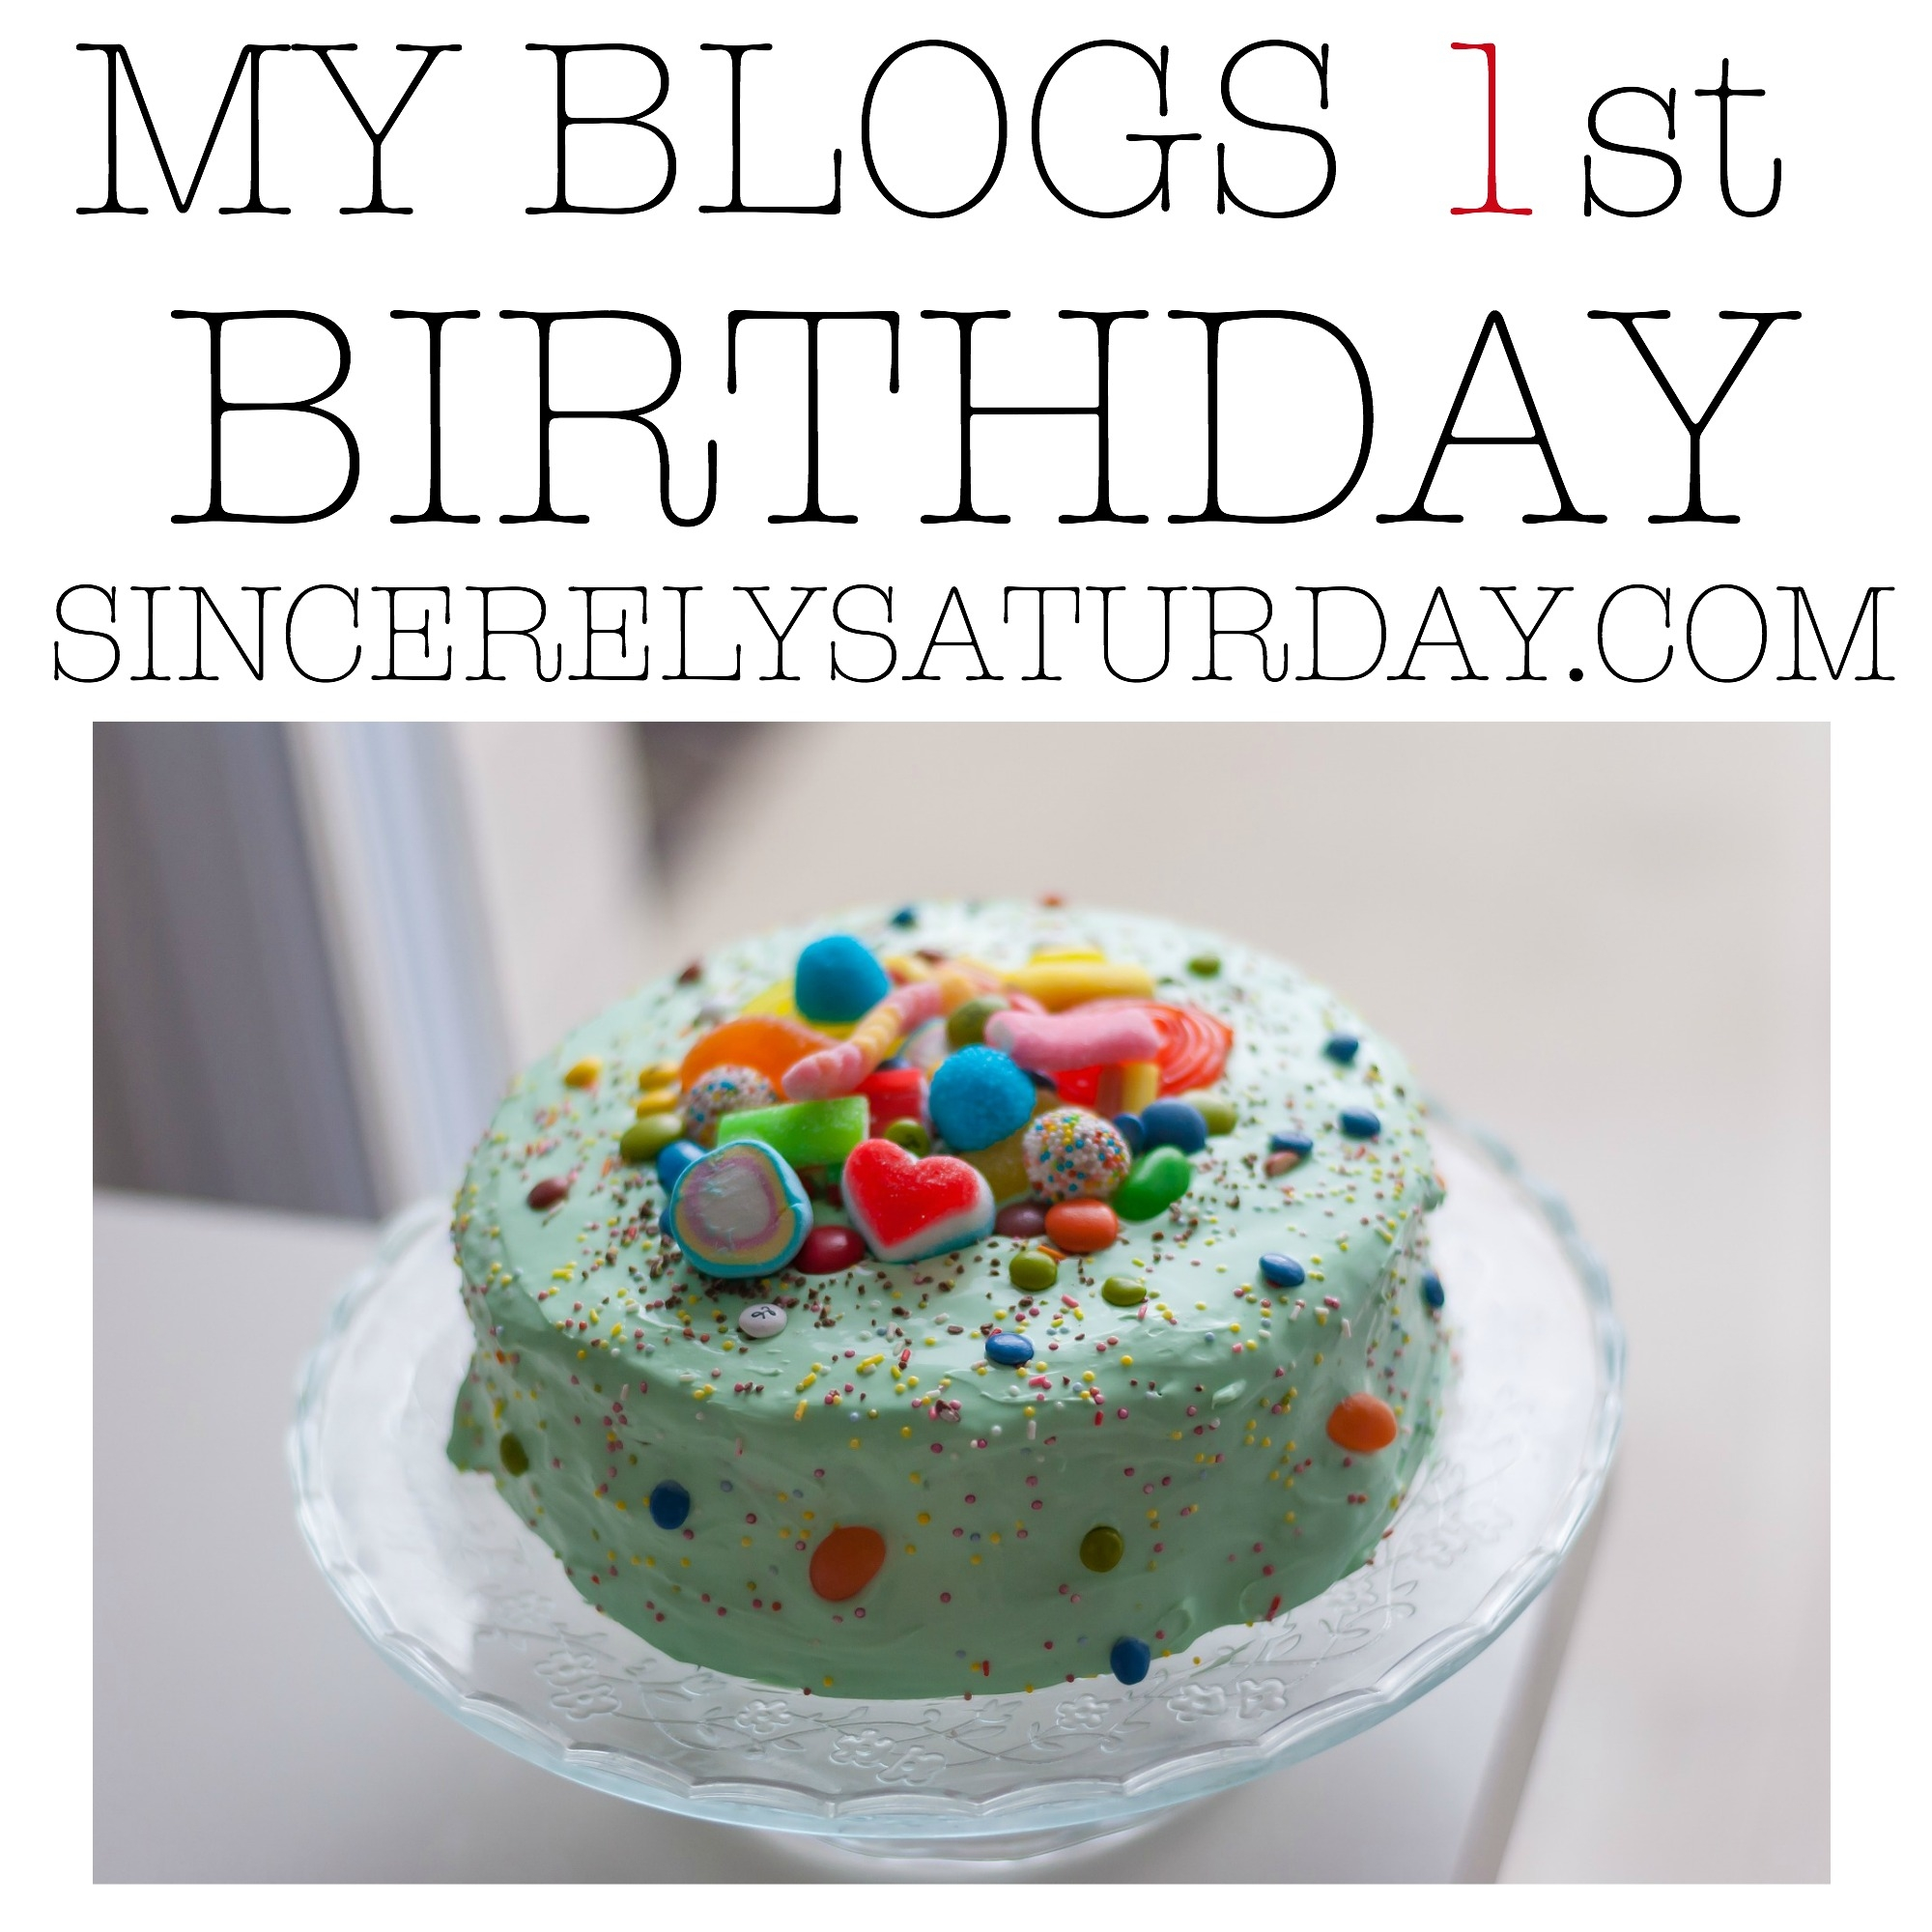 My blogs 1st birthday - Sincerely Saturday